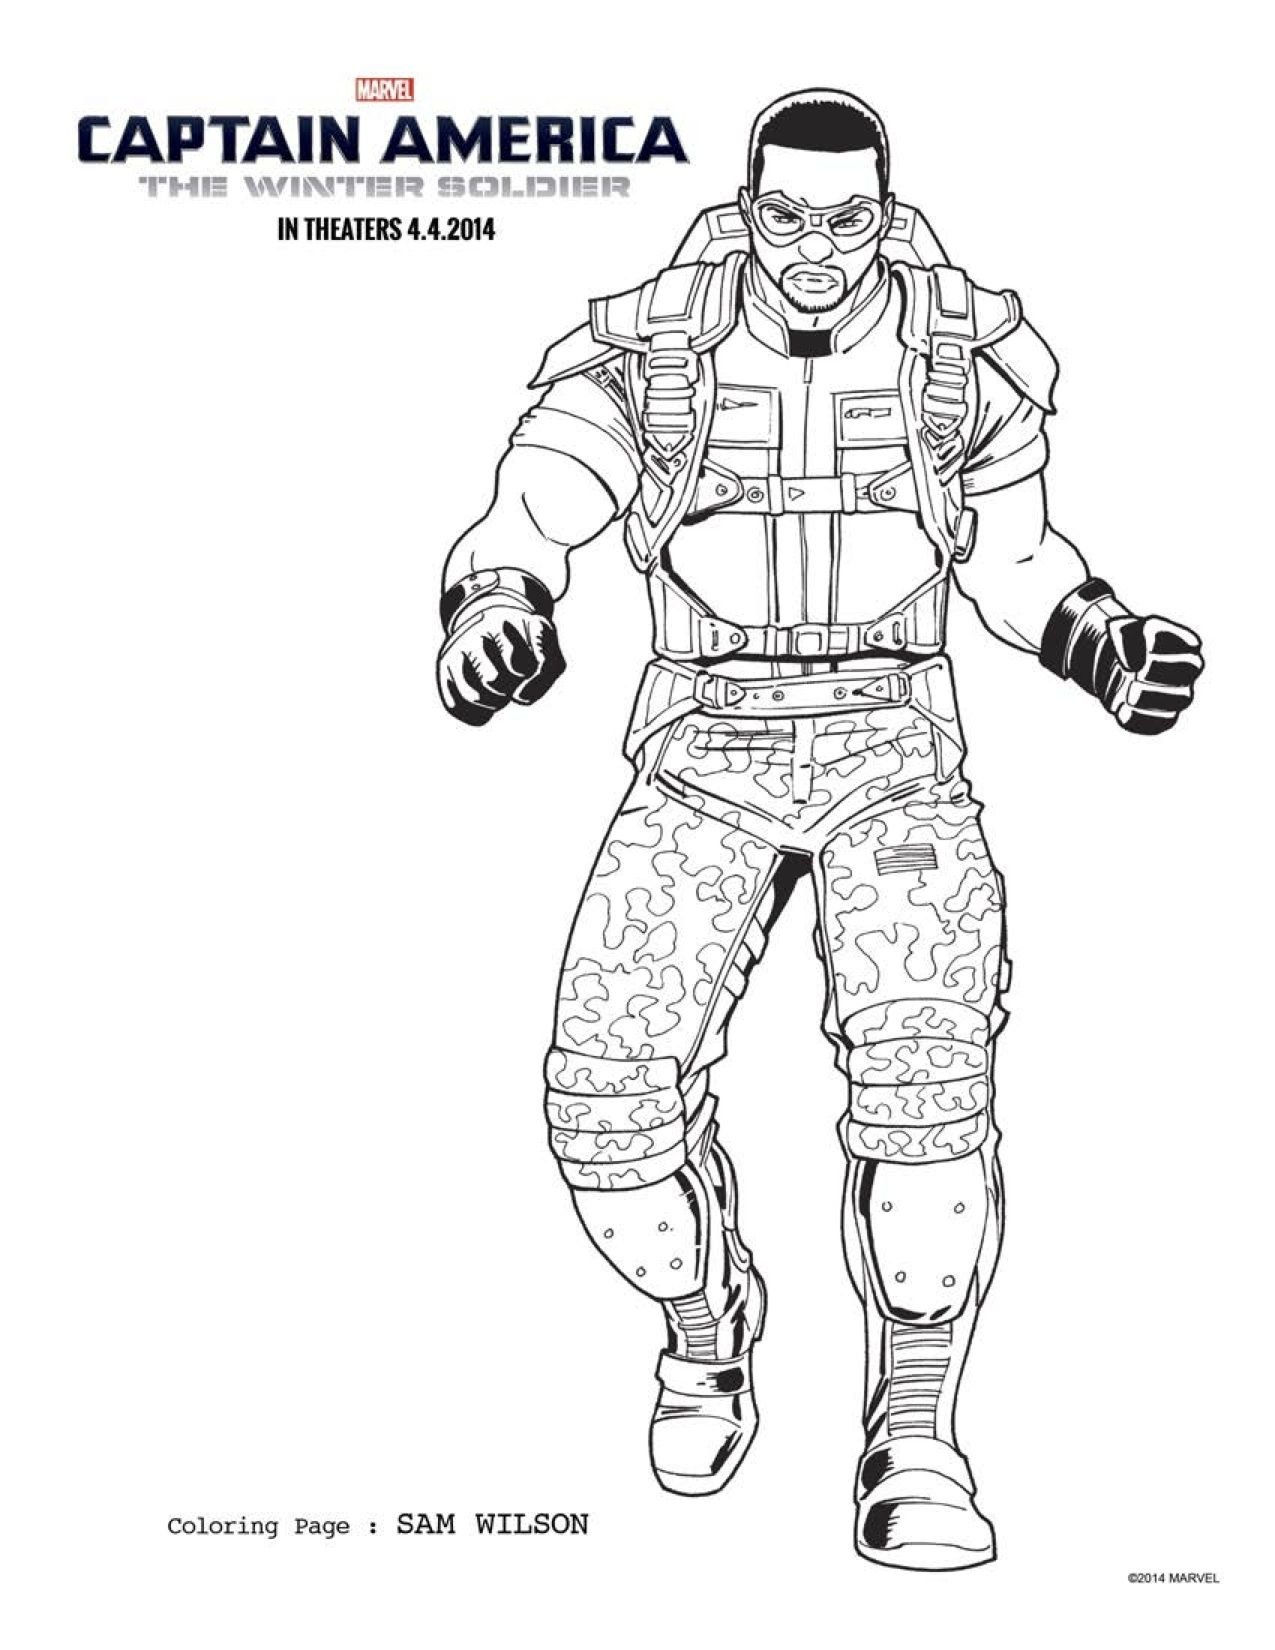 4 CAPTAIN AMERICA: THE WINTER SOLDIER coloring sheets to keep ...